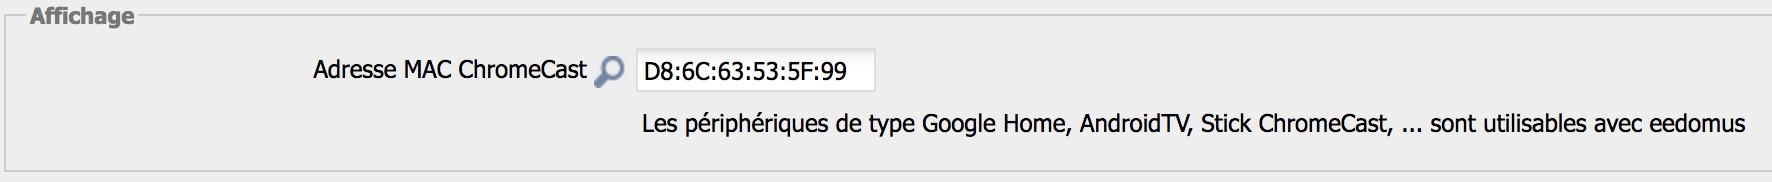 mac-adresse-google-chromecast-domotique-eedomus